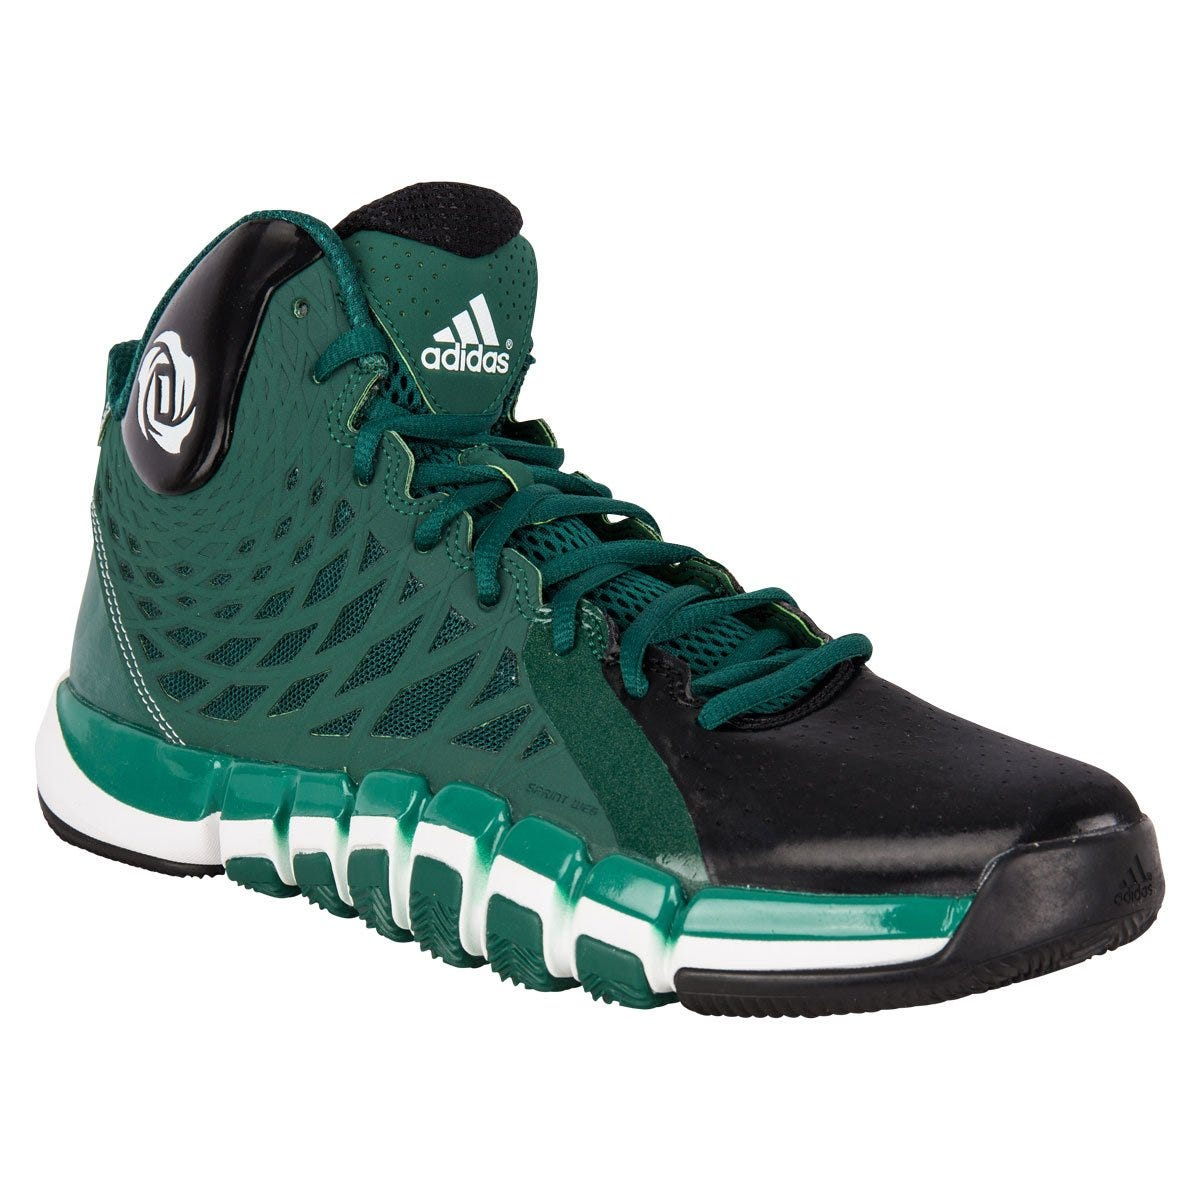 e800d60de449  75.99 More Details · Adidas D Rose 773 II Men s Basketball Shoes-Forest  Green